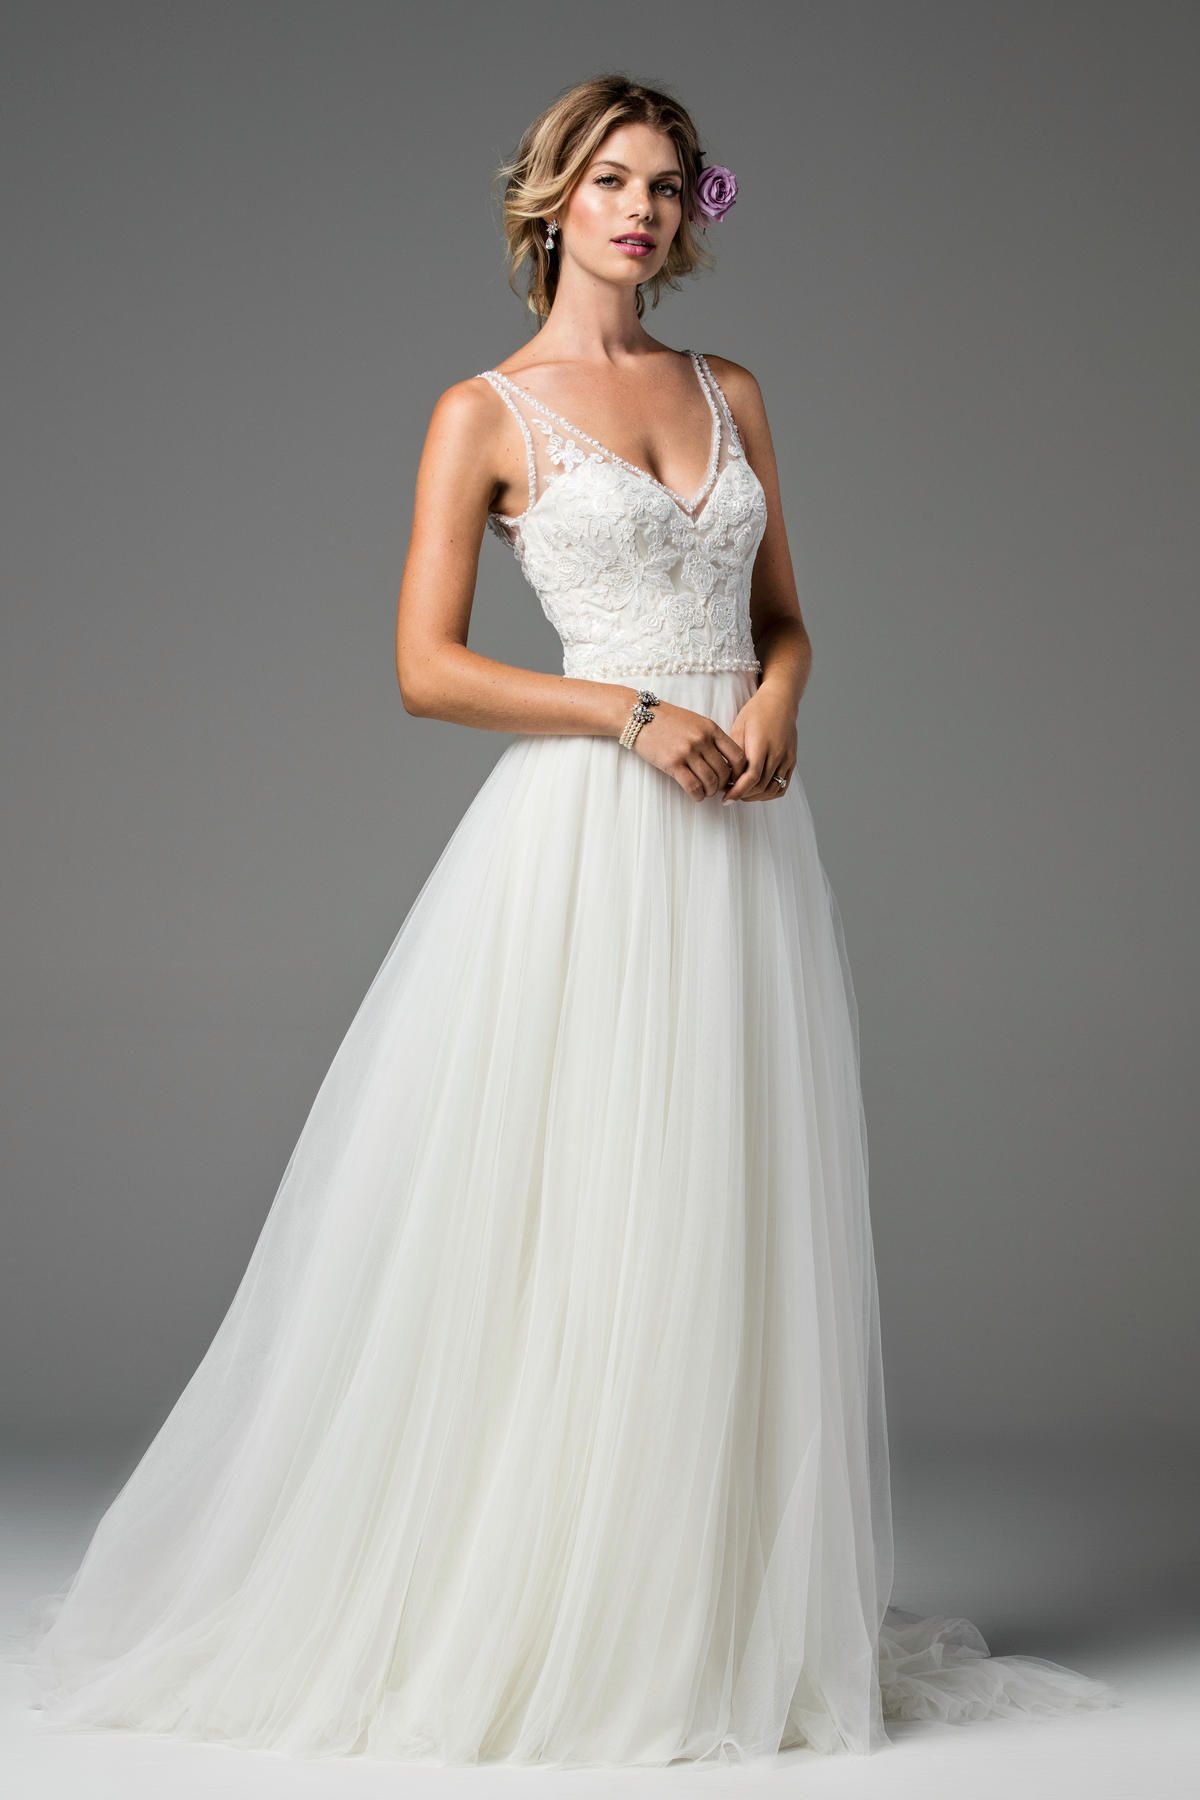 Designer Wtoo Style Locklin Available At Bliss Bridal In Wisconsin Www Blissbridalonline Com Wtoo Wedding Dress A Line Wedding Dress Watters Wedding Dress